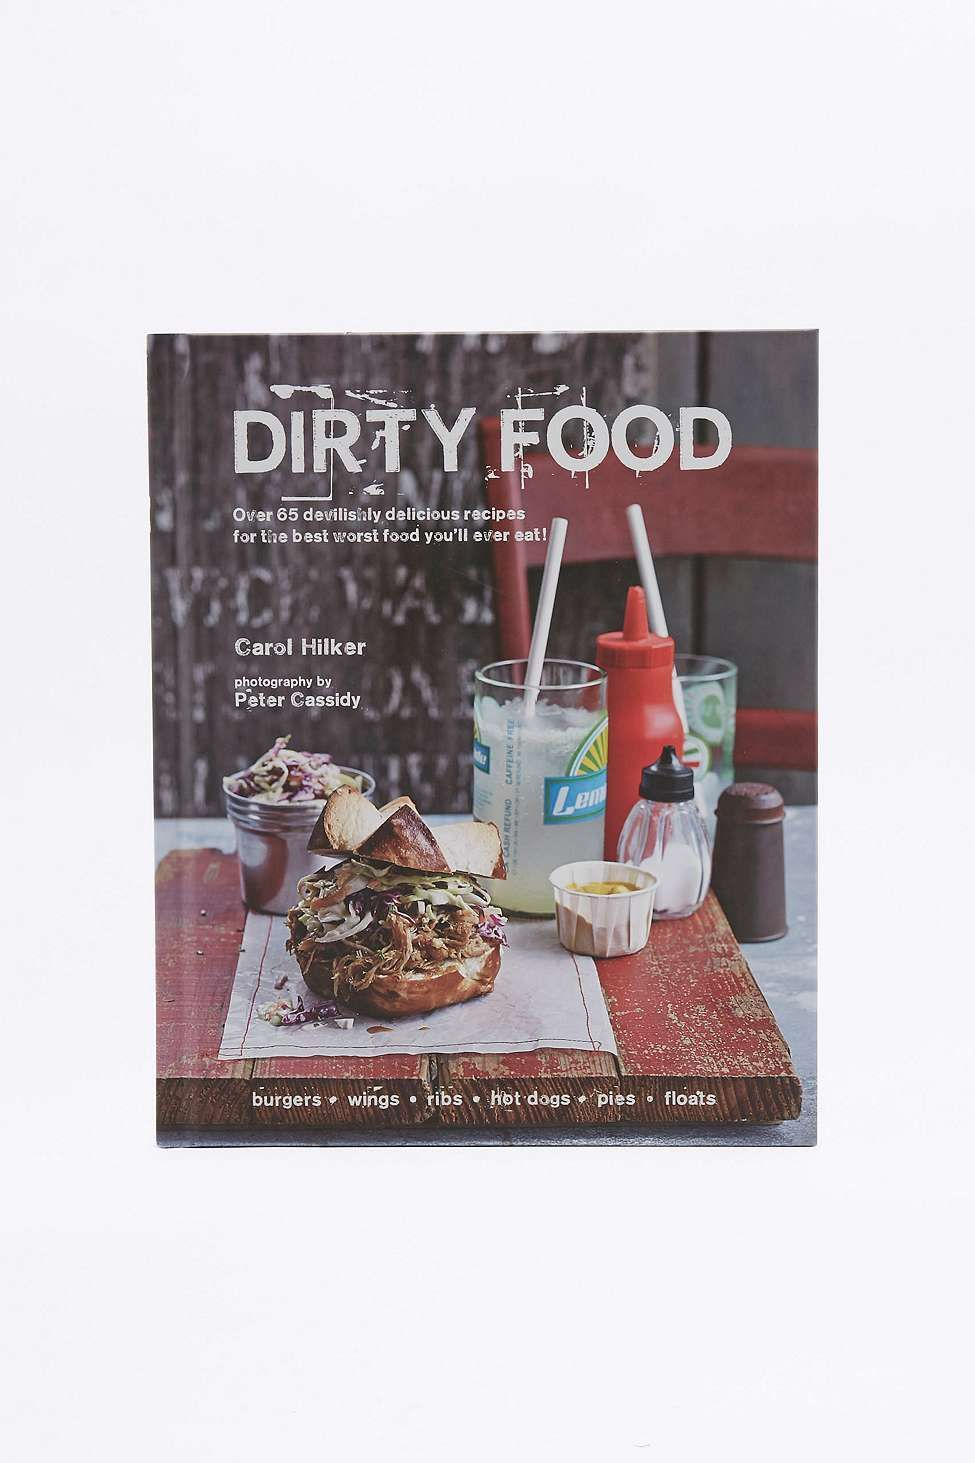 Dirty food over 65 devilishly delicious recipes for the best dirty food over 65 devilishly delicious recipes for the best worst food youll forumfinder Choice Image